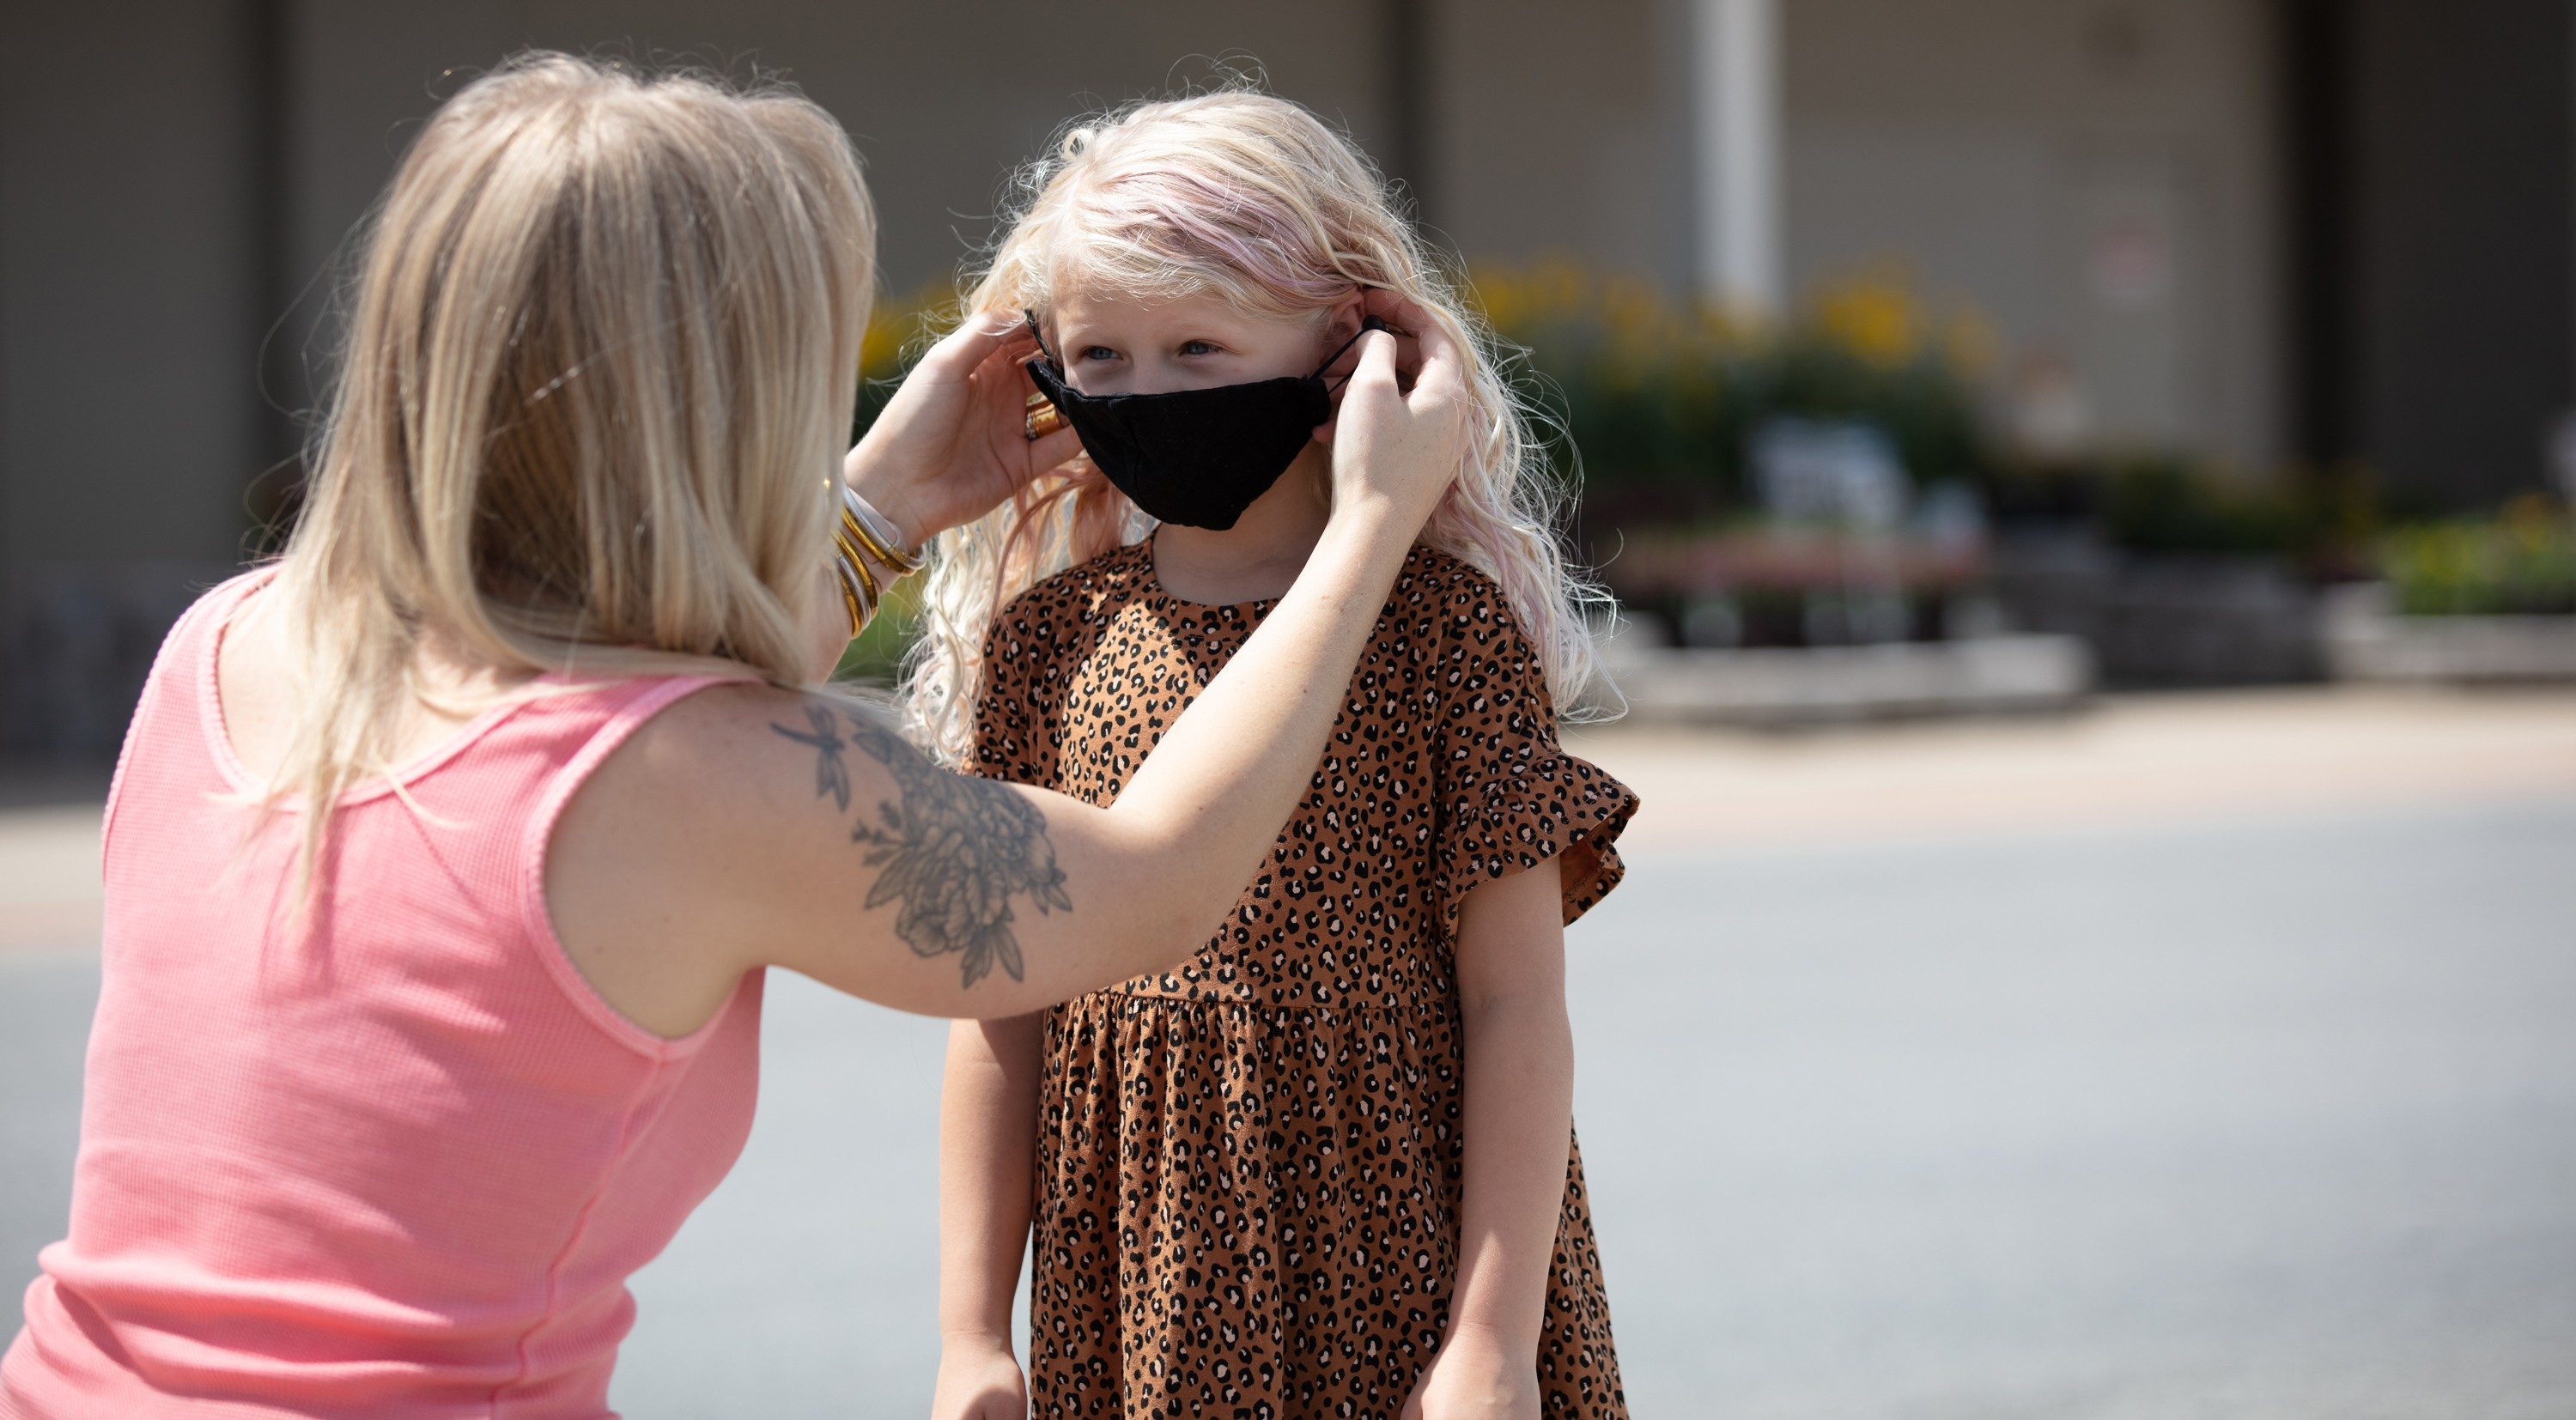 Calley Williams, a Walmart customer, puts a mask on her daughter